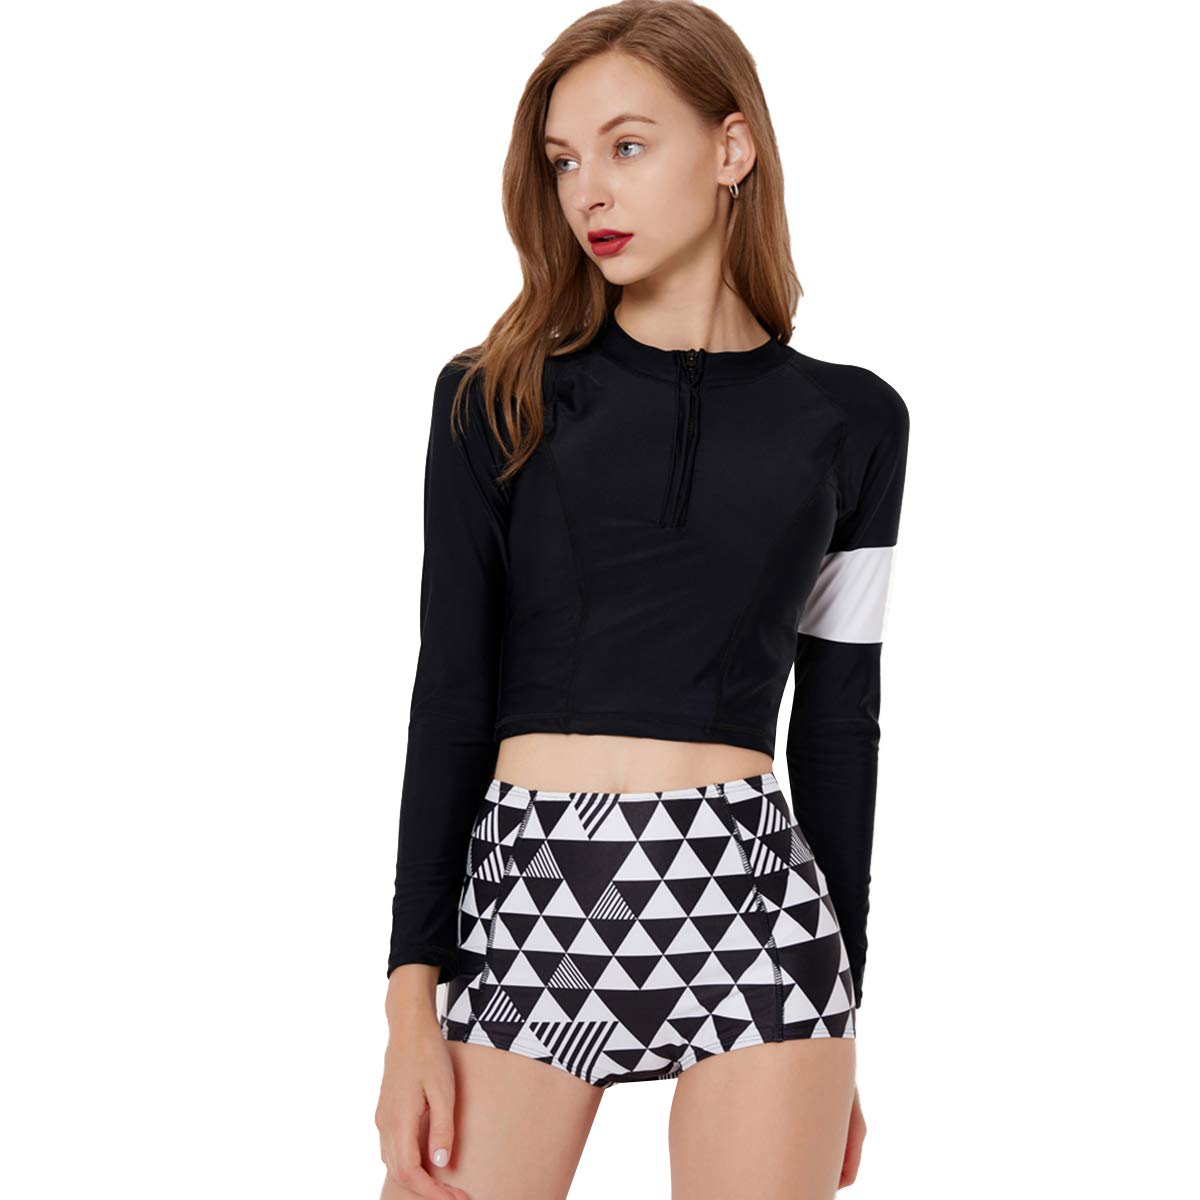 1b0425456c8 Womens Two Piece Long Sleeve Half Zip Front Surfing Rash Guard Swimwear  Padded Push Up Swimsuit Top High Waist Bathing Suit at Amazon Women's  Clothing store ...